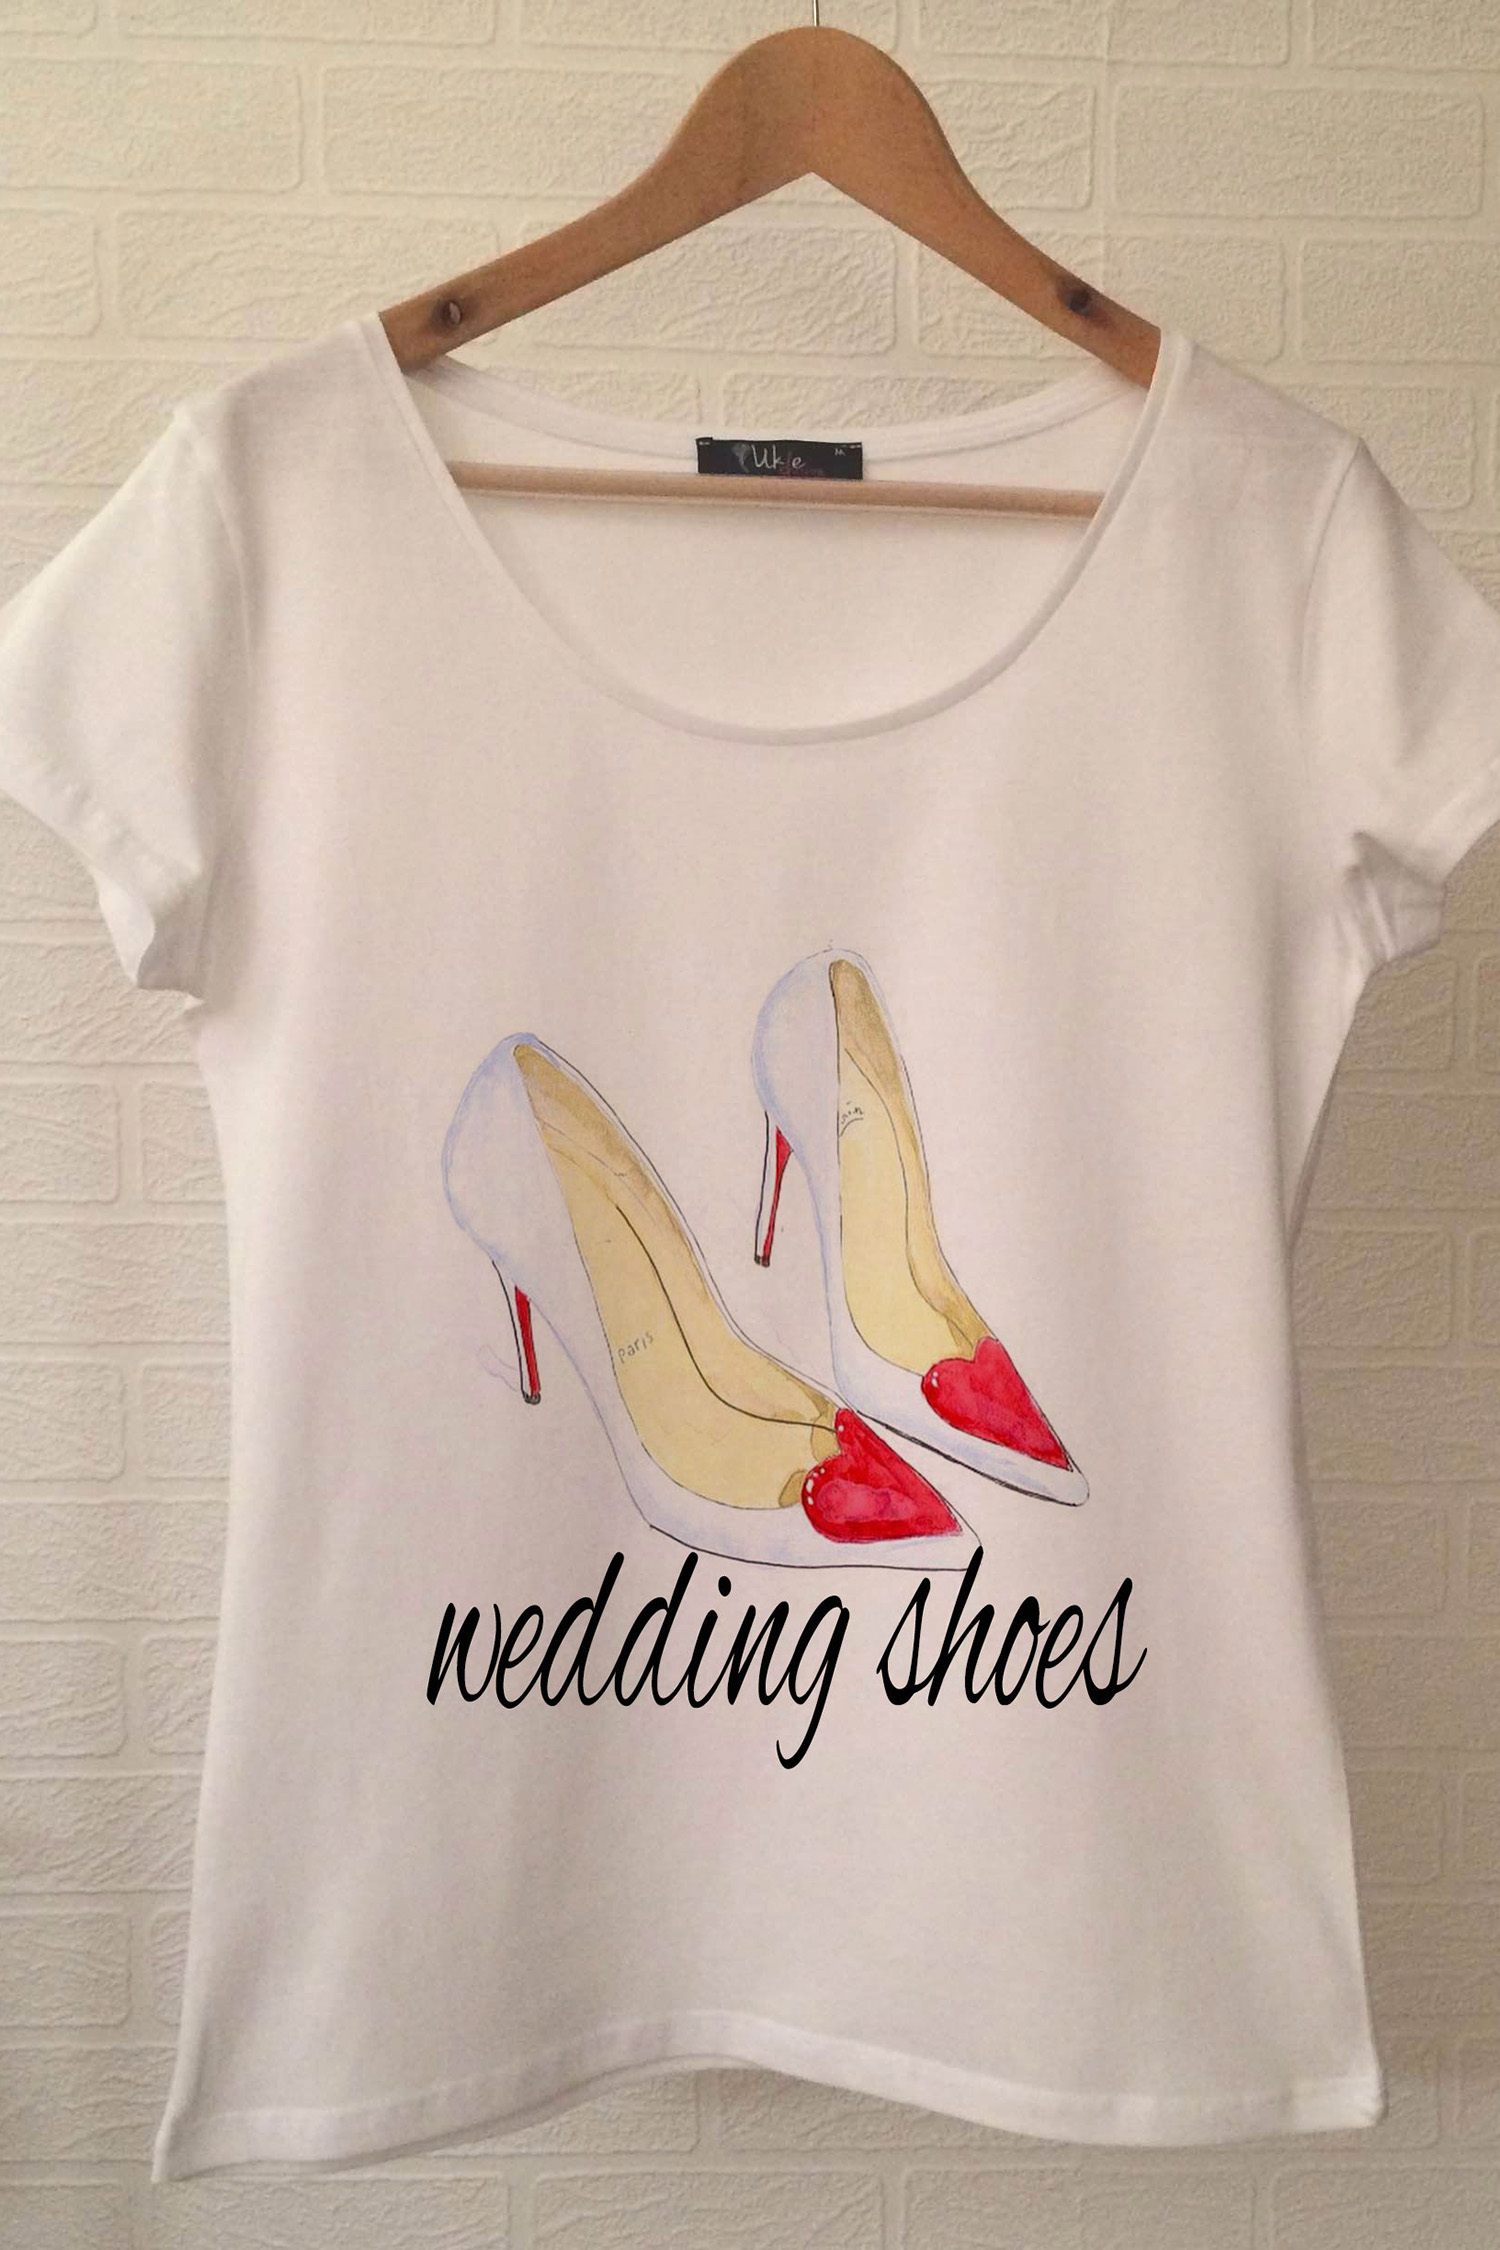 Bride T-shirt ukde91